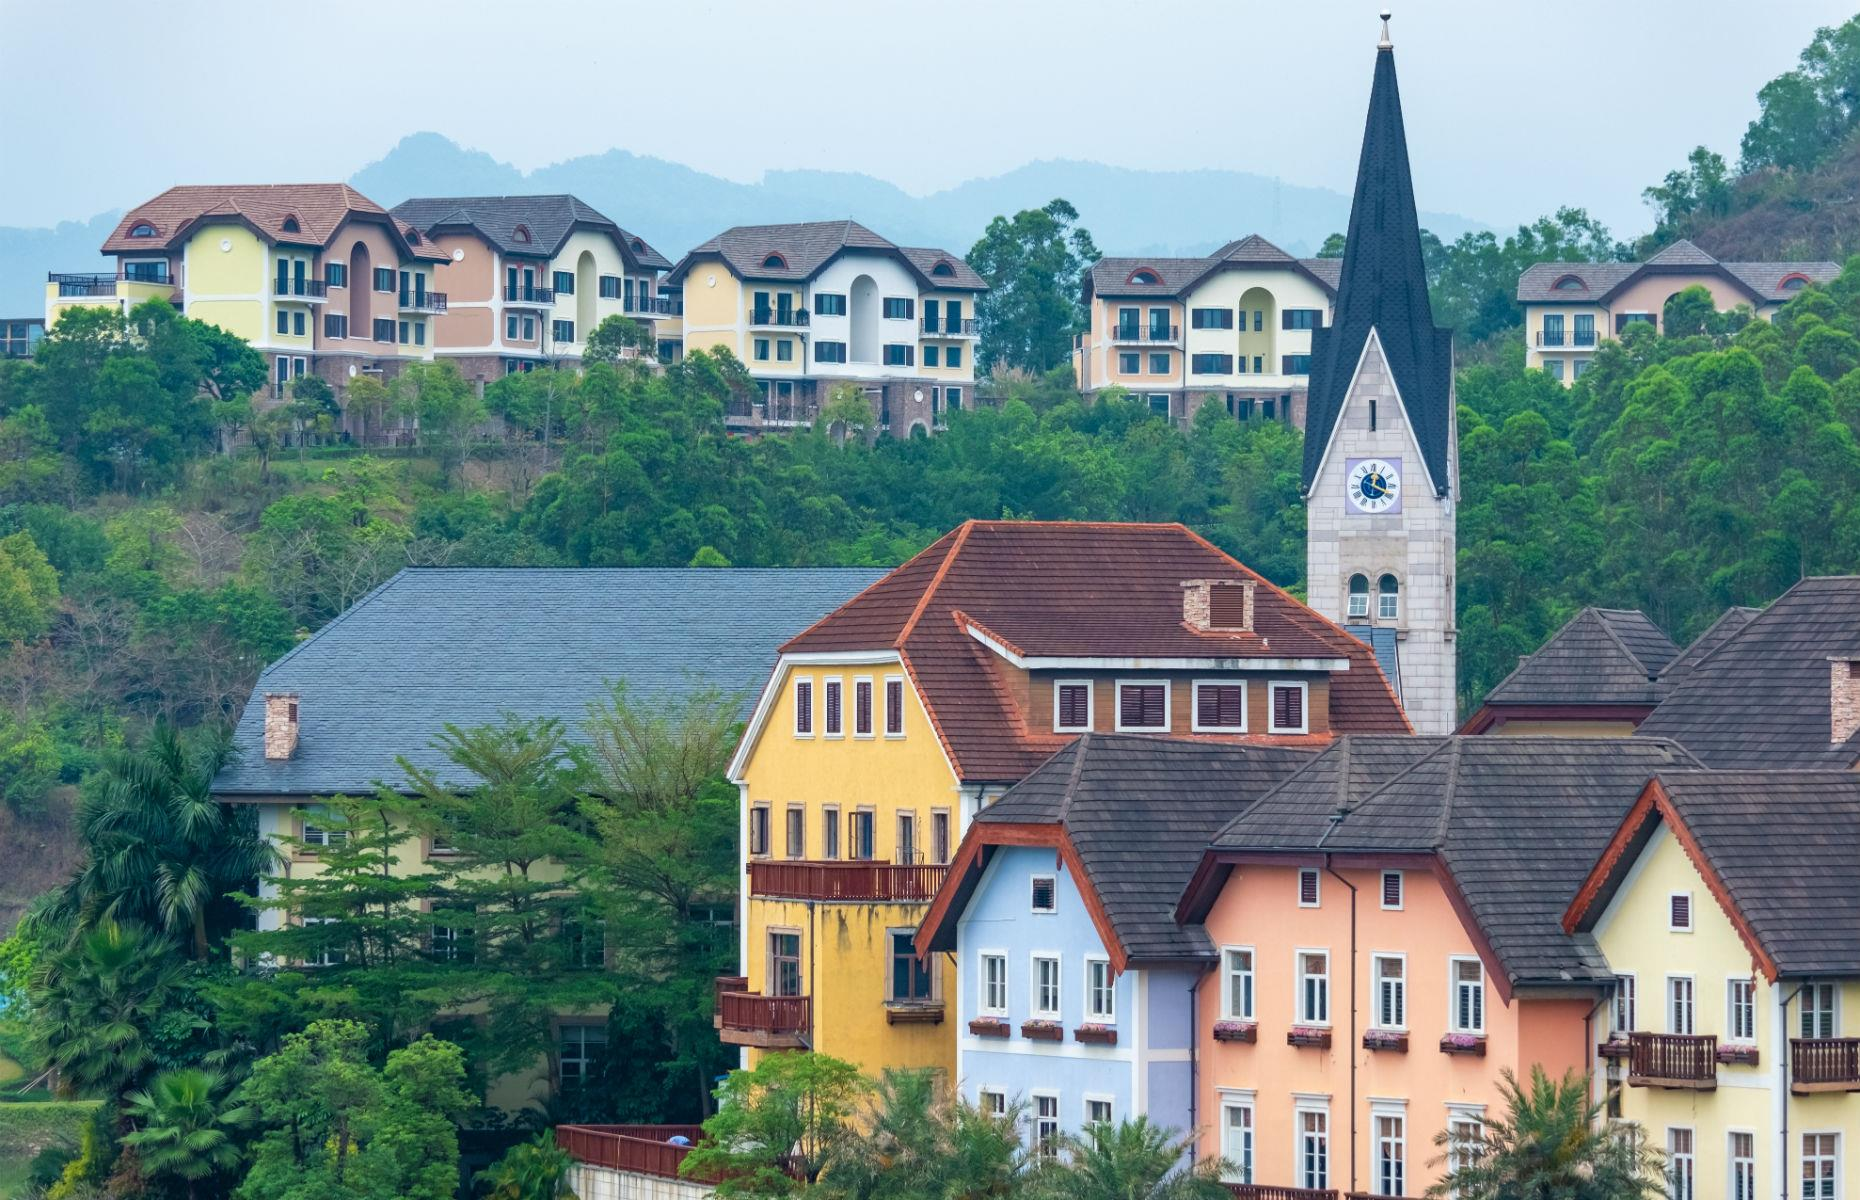 Slide 15 of 37: The Hallstatt clone (pictured here) was opened near Huizhou in 2012 at an estimated cost of $940 million. As well as Austrian-style houses, there's a village square and working church clock tower. Originally intended as housing for the rich, it's now a major tourist attraction.